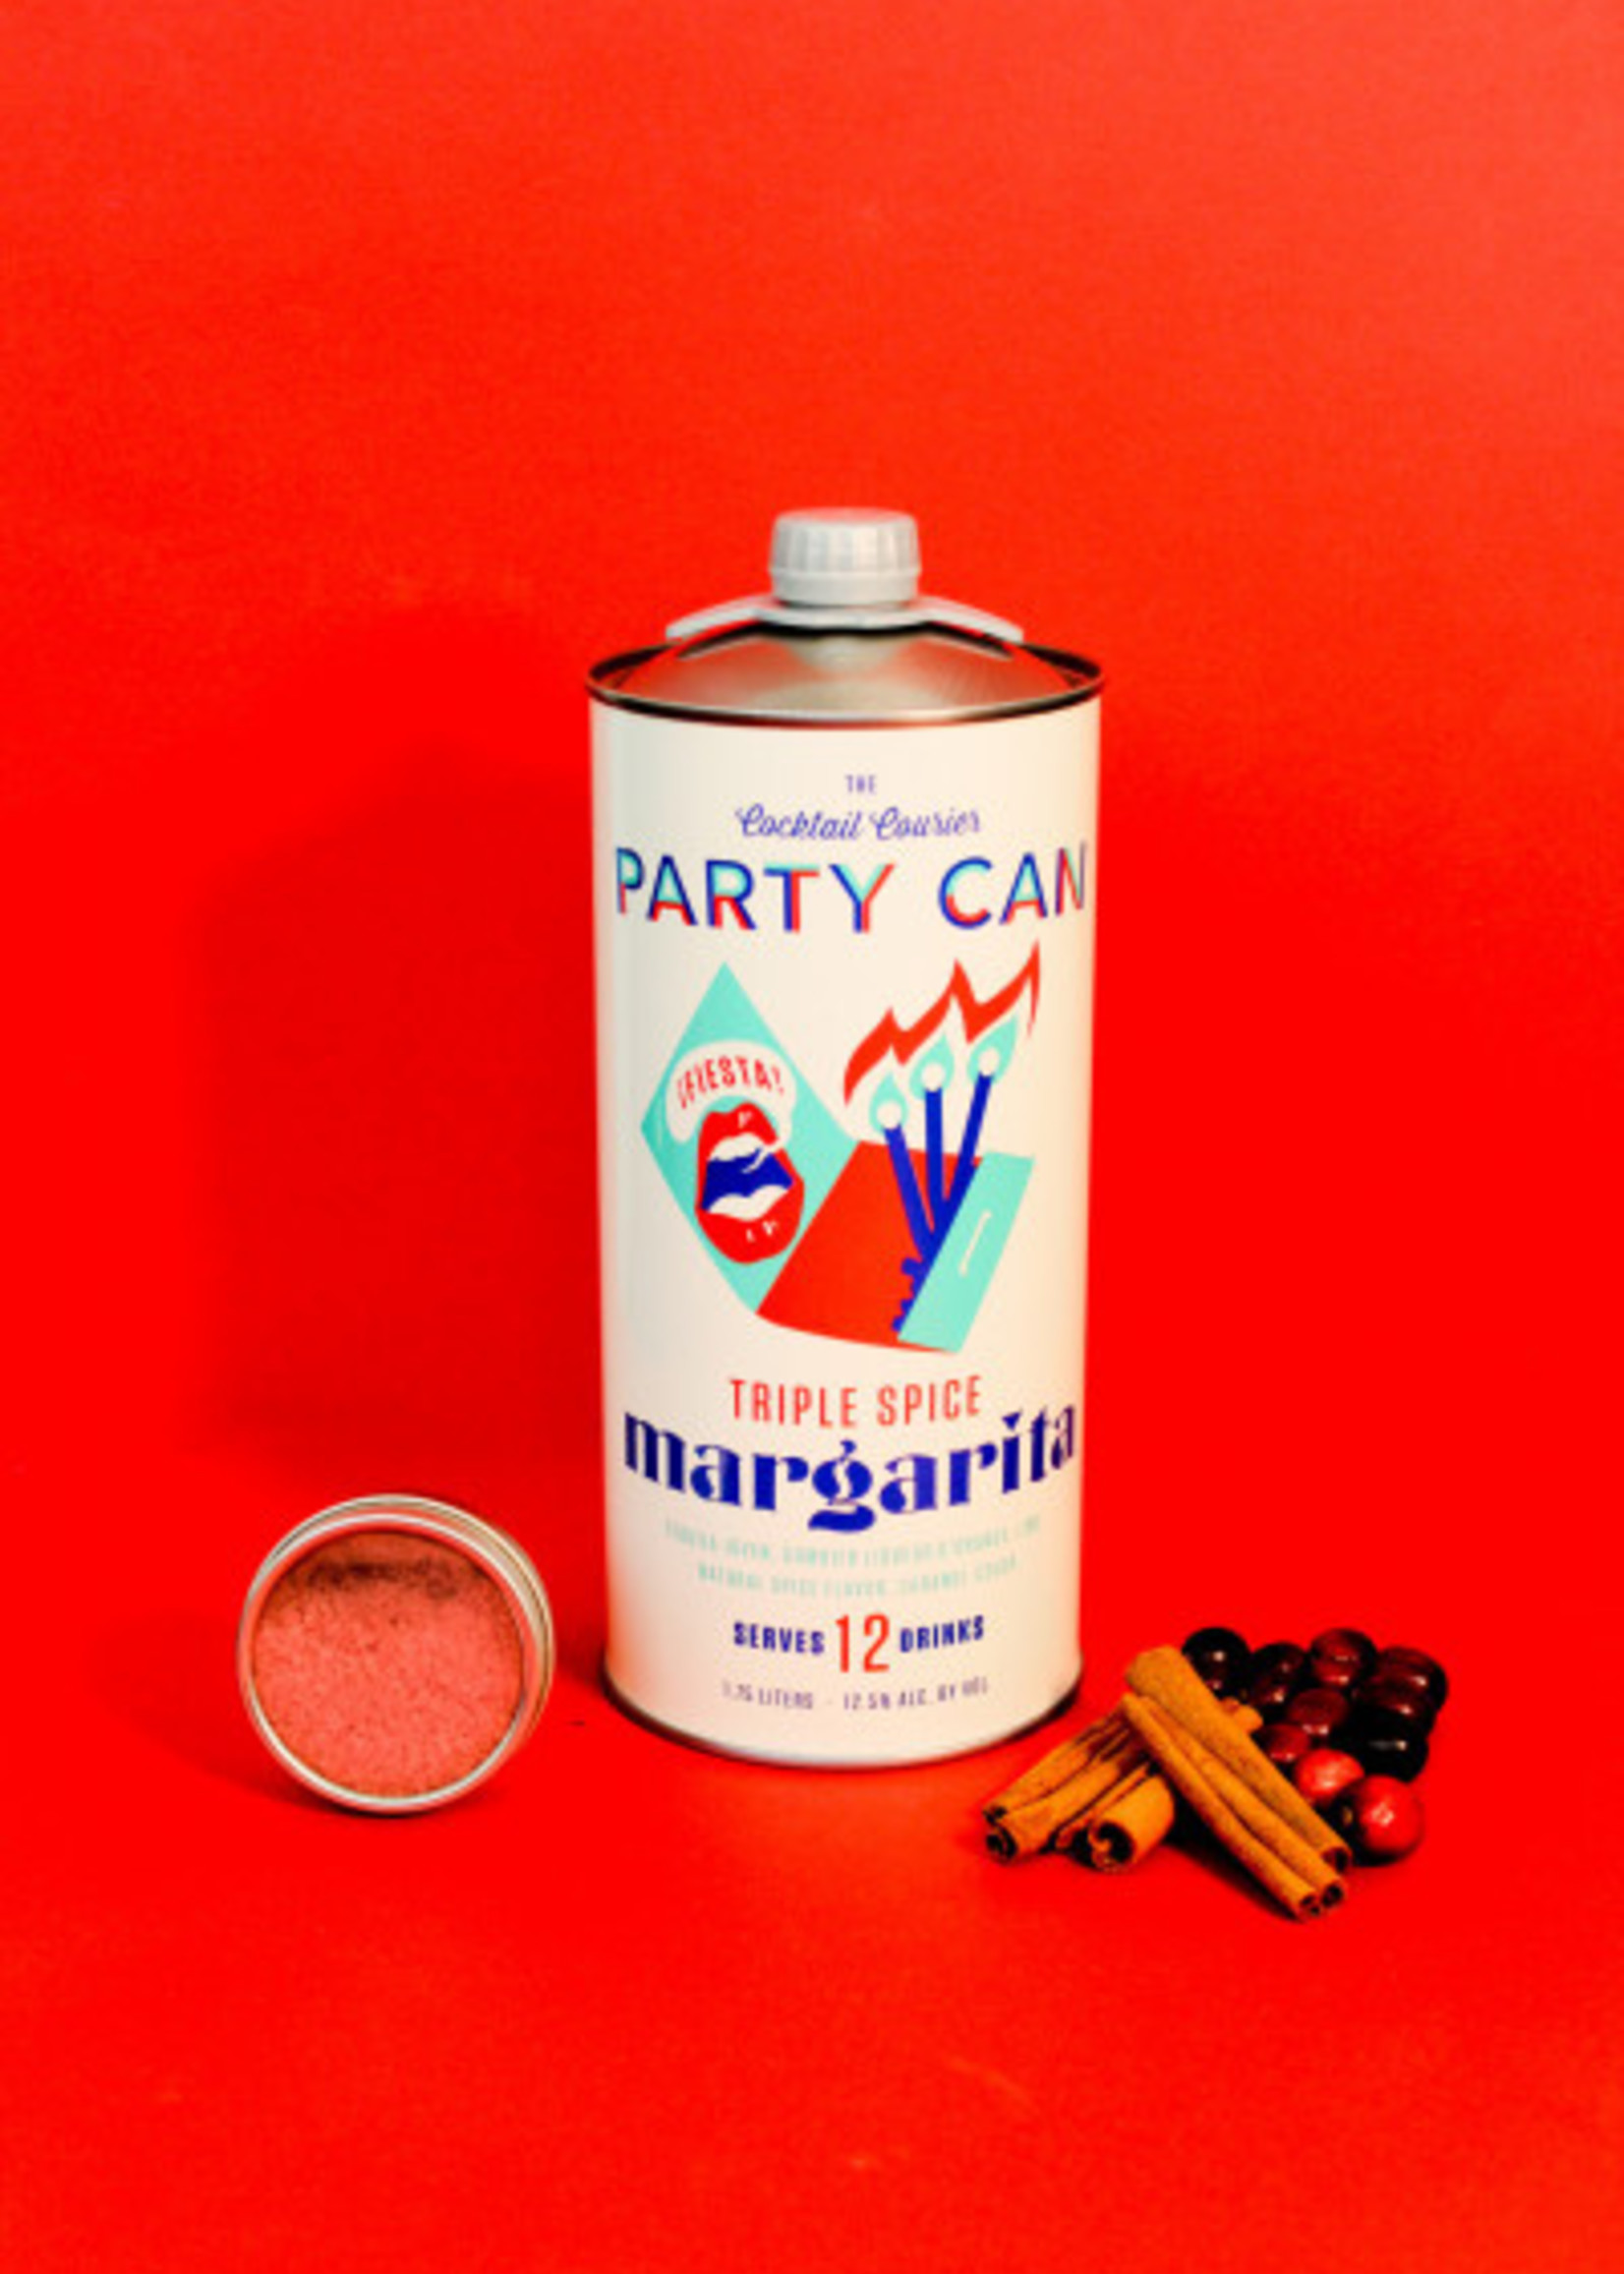 Cocktail Courier Party Can RTD Margarita 1.75L